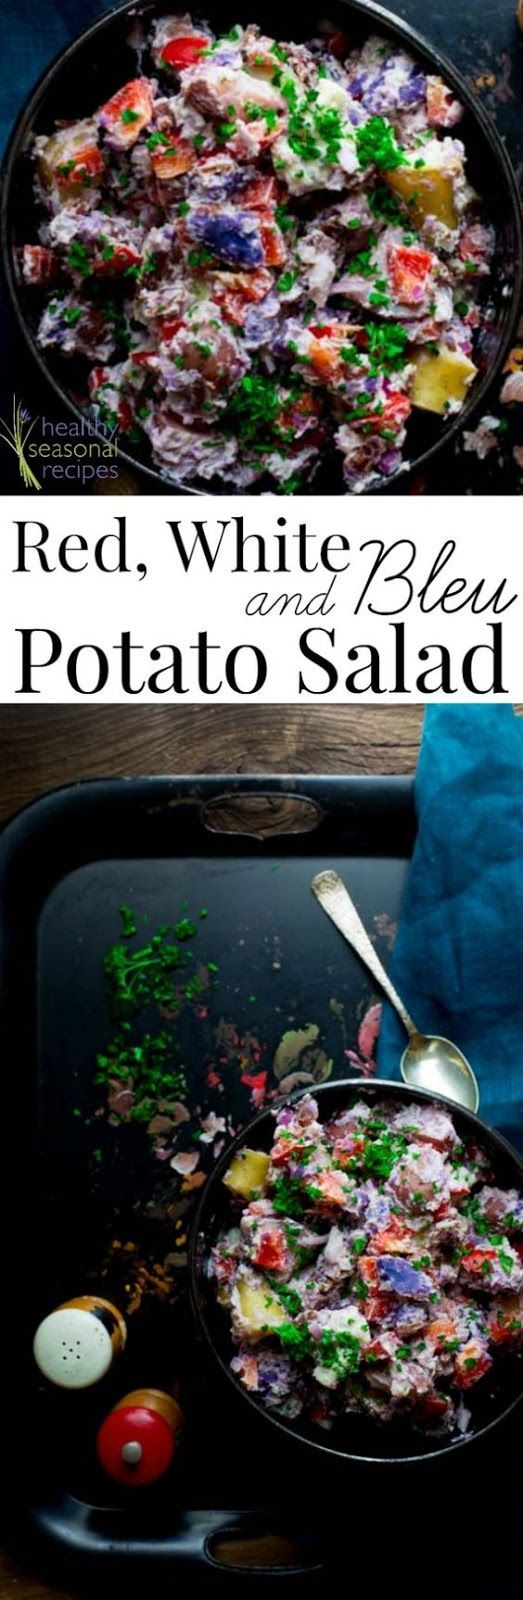 Red White and Blue Potato Salad with Horseradish and Bacon: